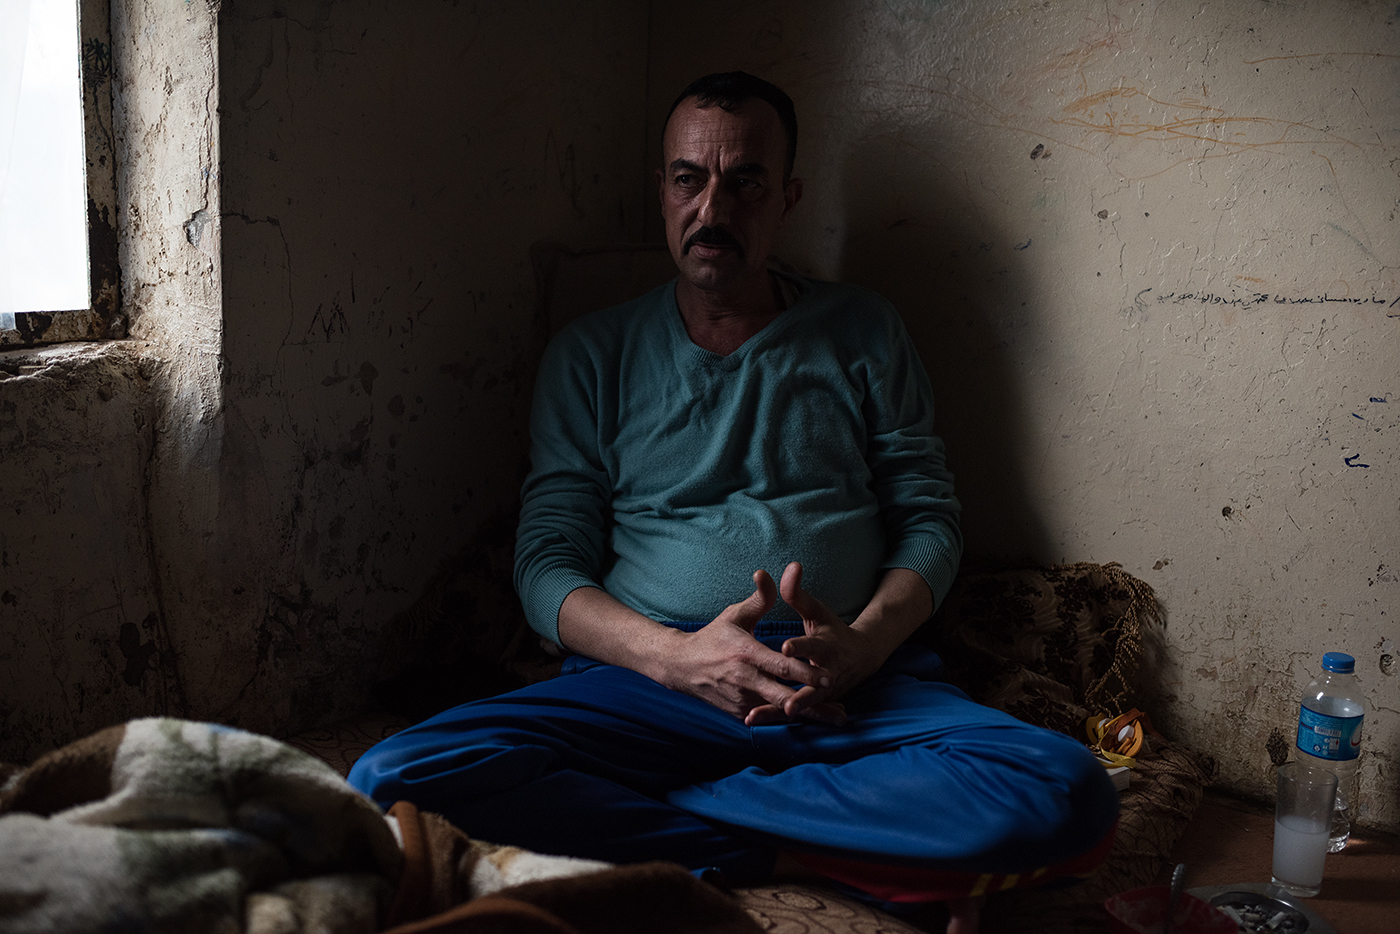 A Yazidi man living in the ruins of one of Saddam Hussein's palaces.  He fled with his family from the village of Dhola during the 2014 genocide perpetrated against the Yazidi by ISIS.  {quote}We have no future in Iraq.  Everything is broken for us{quote}.